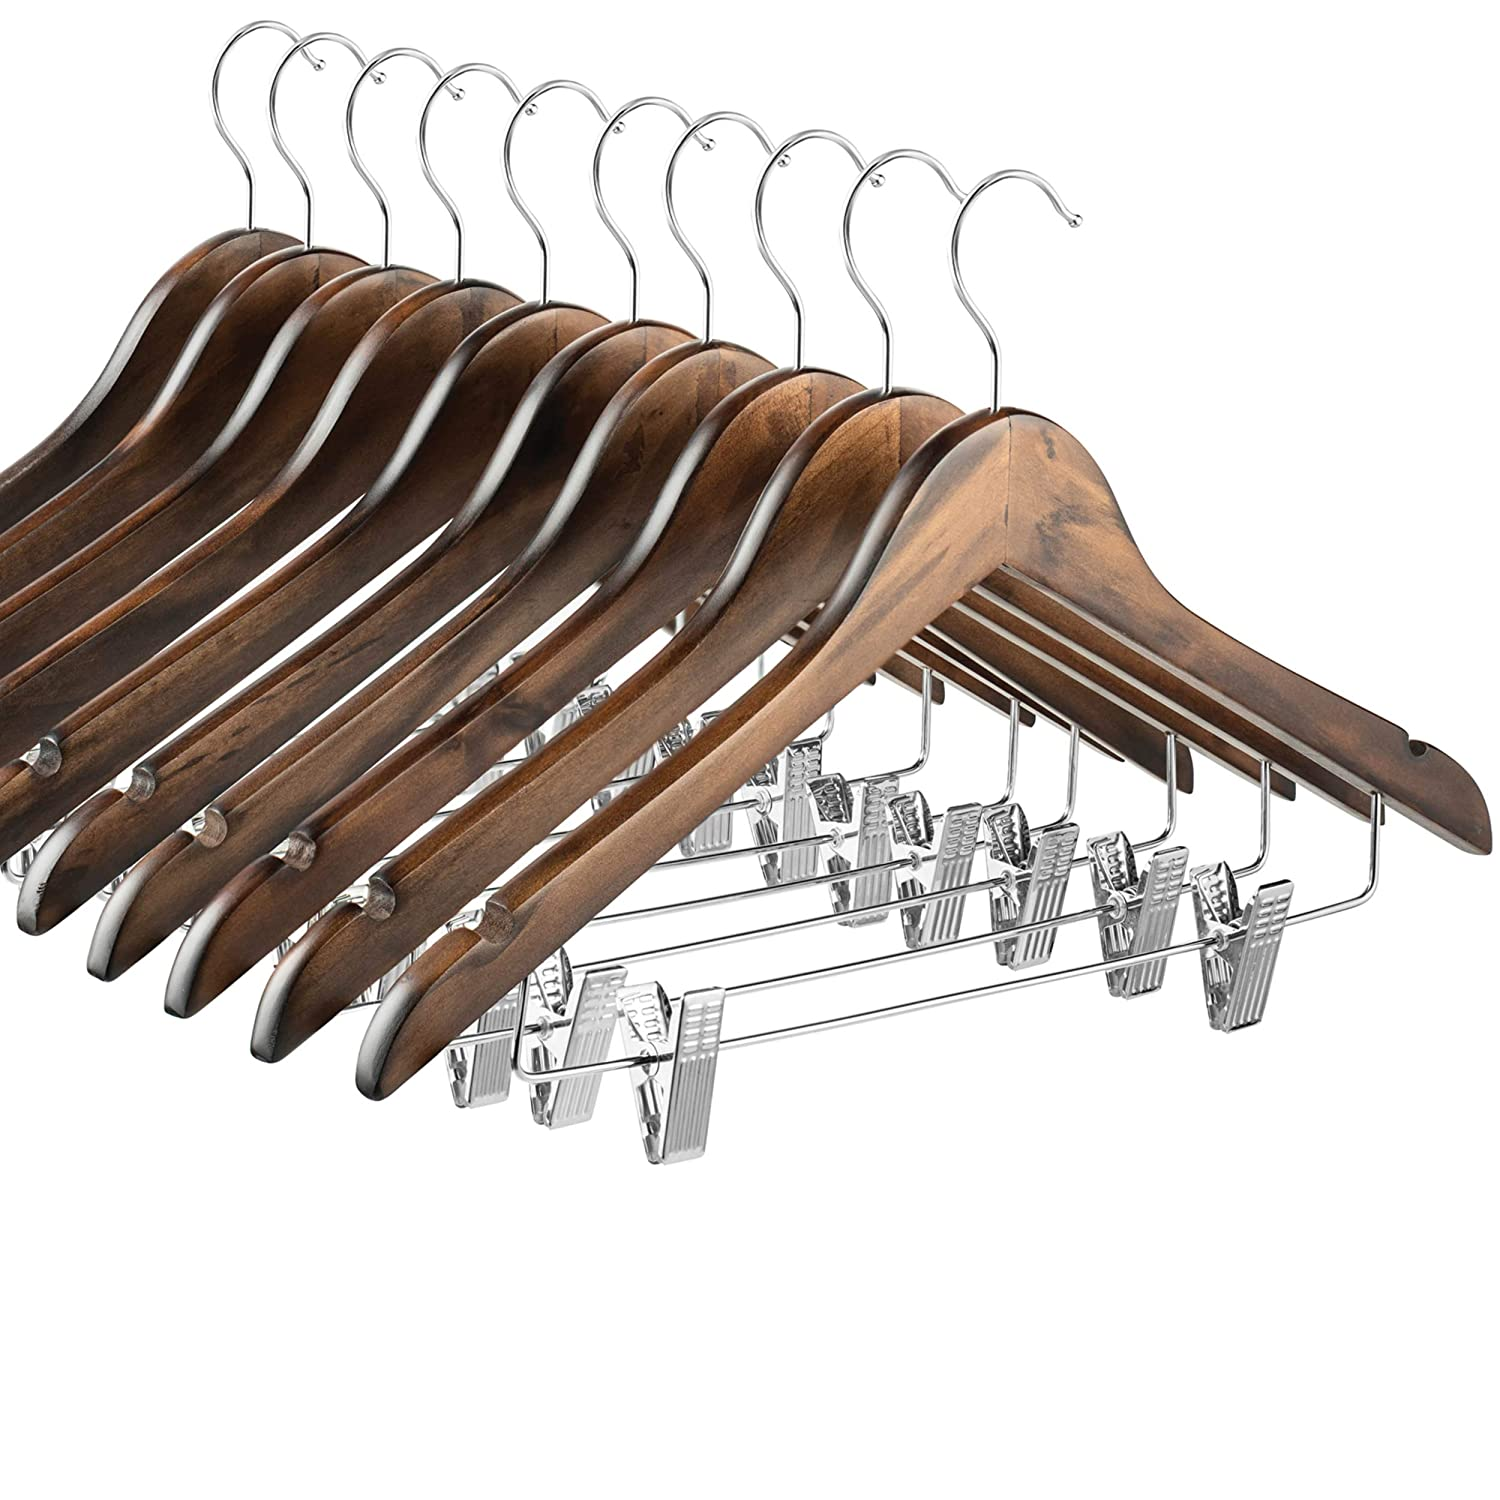 Smooth Solid Wood Pants Hangers with Durable Adjustable Metal Clips Jacket Blouse Shoulder Notches for Dress Coat 360/° Swivel Hook 10 Pack High-Grade Wooden Suit Hangers Skirt Hangers with Clips